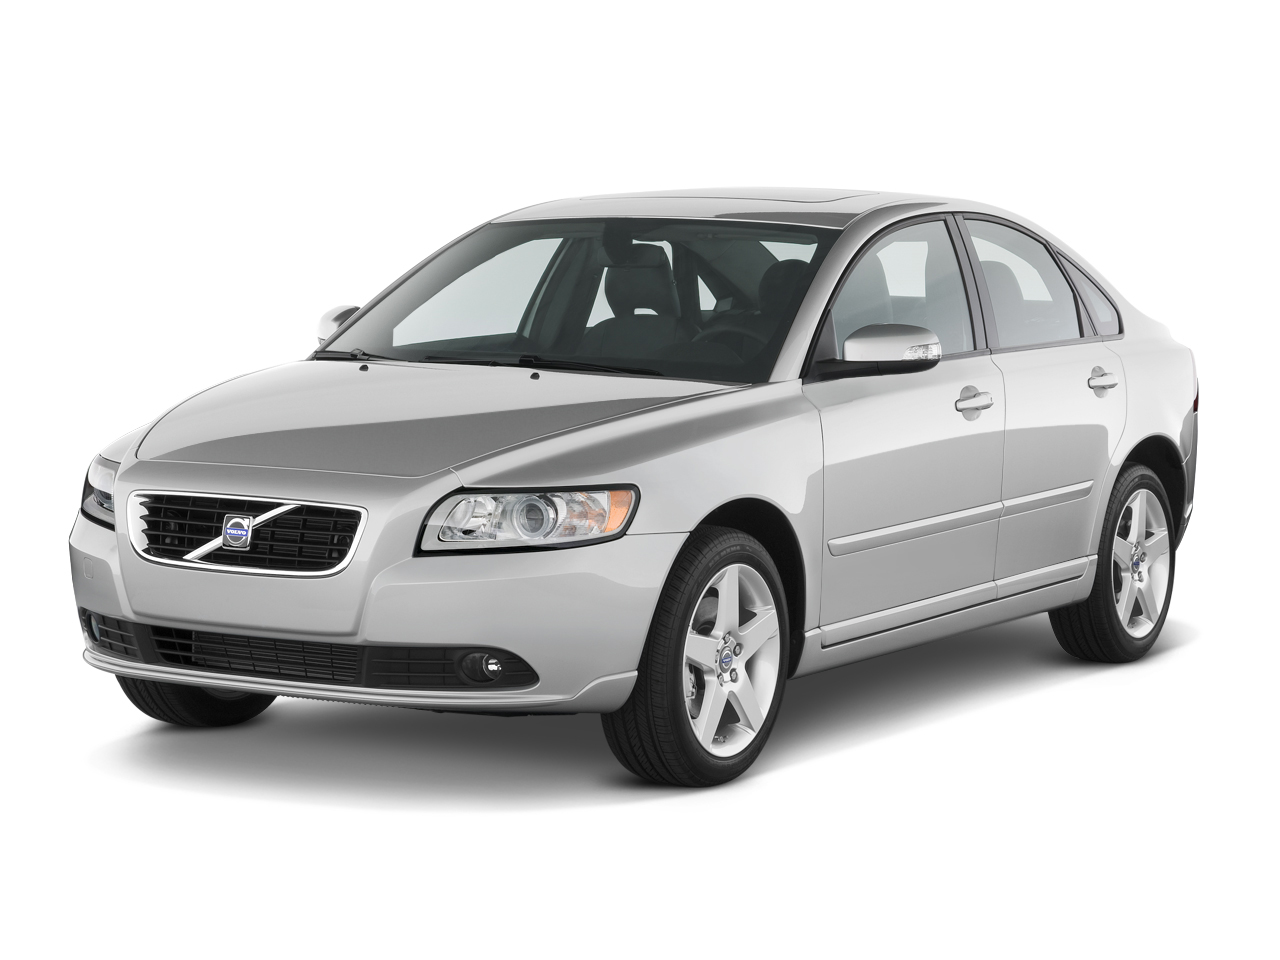 New And Used Volvo S40 Prices Photos Reviews Specs The Car Connection